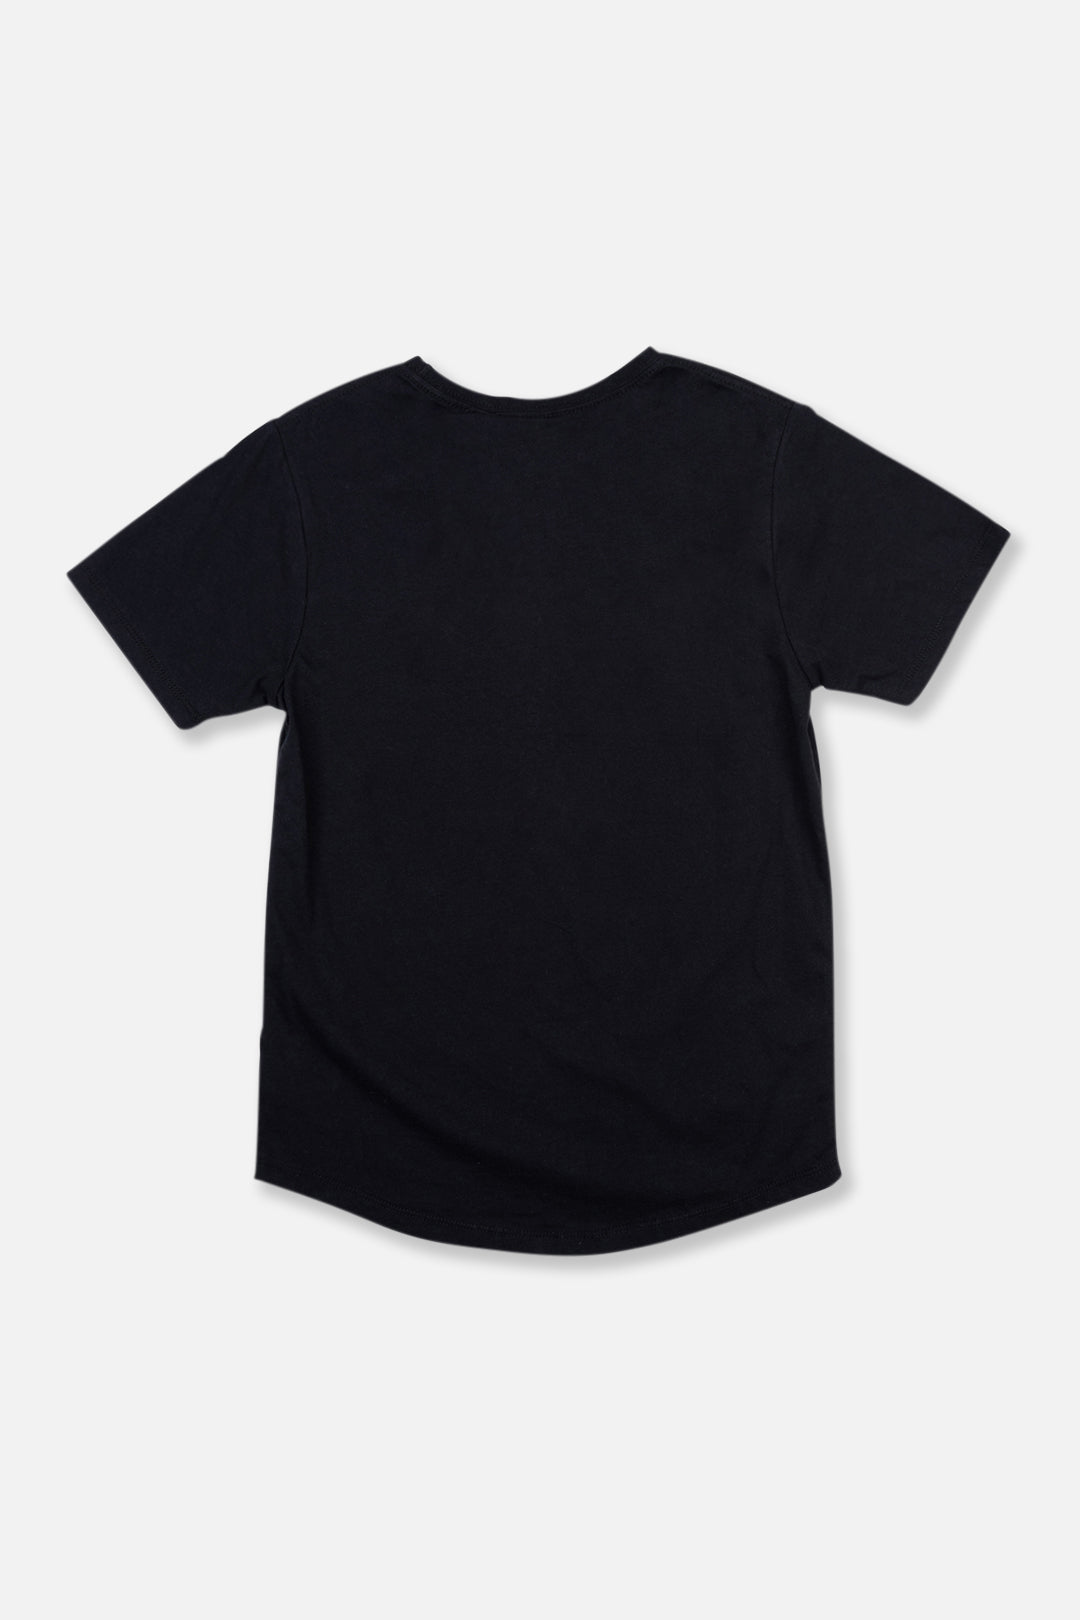 The Nation Tee - Black